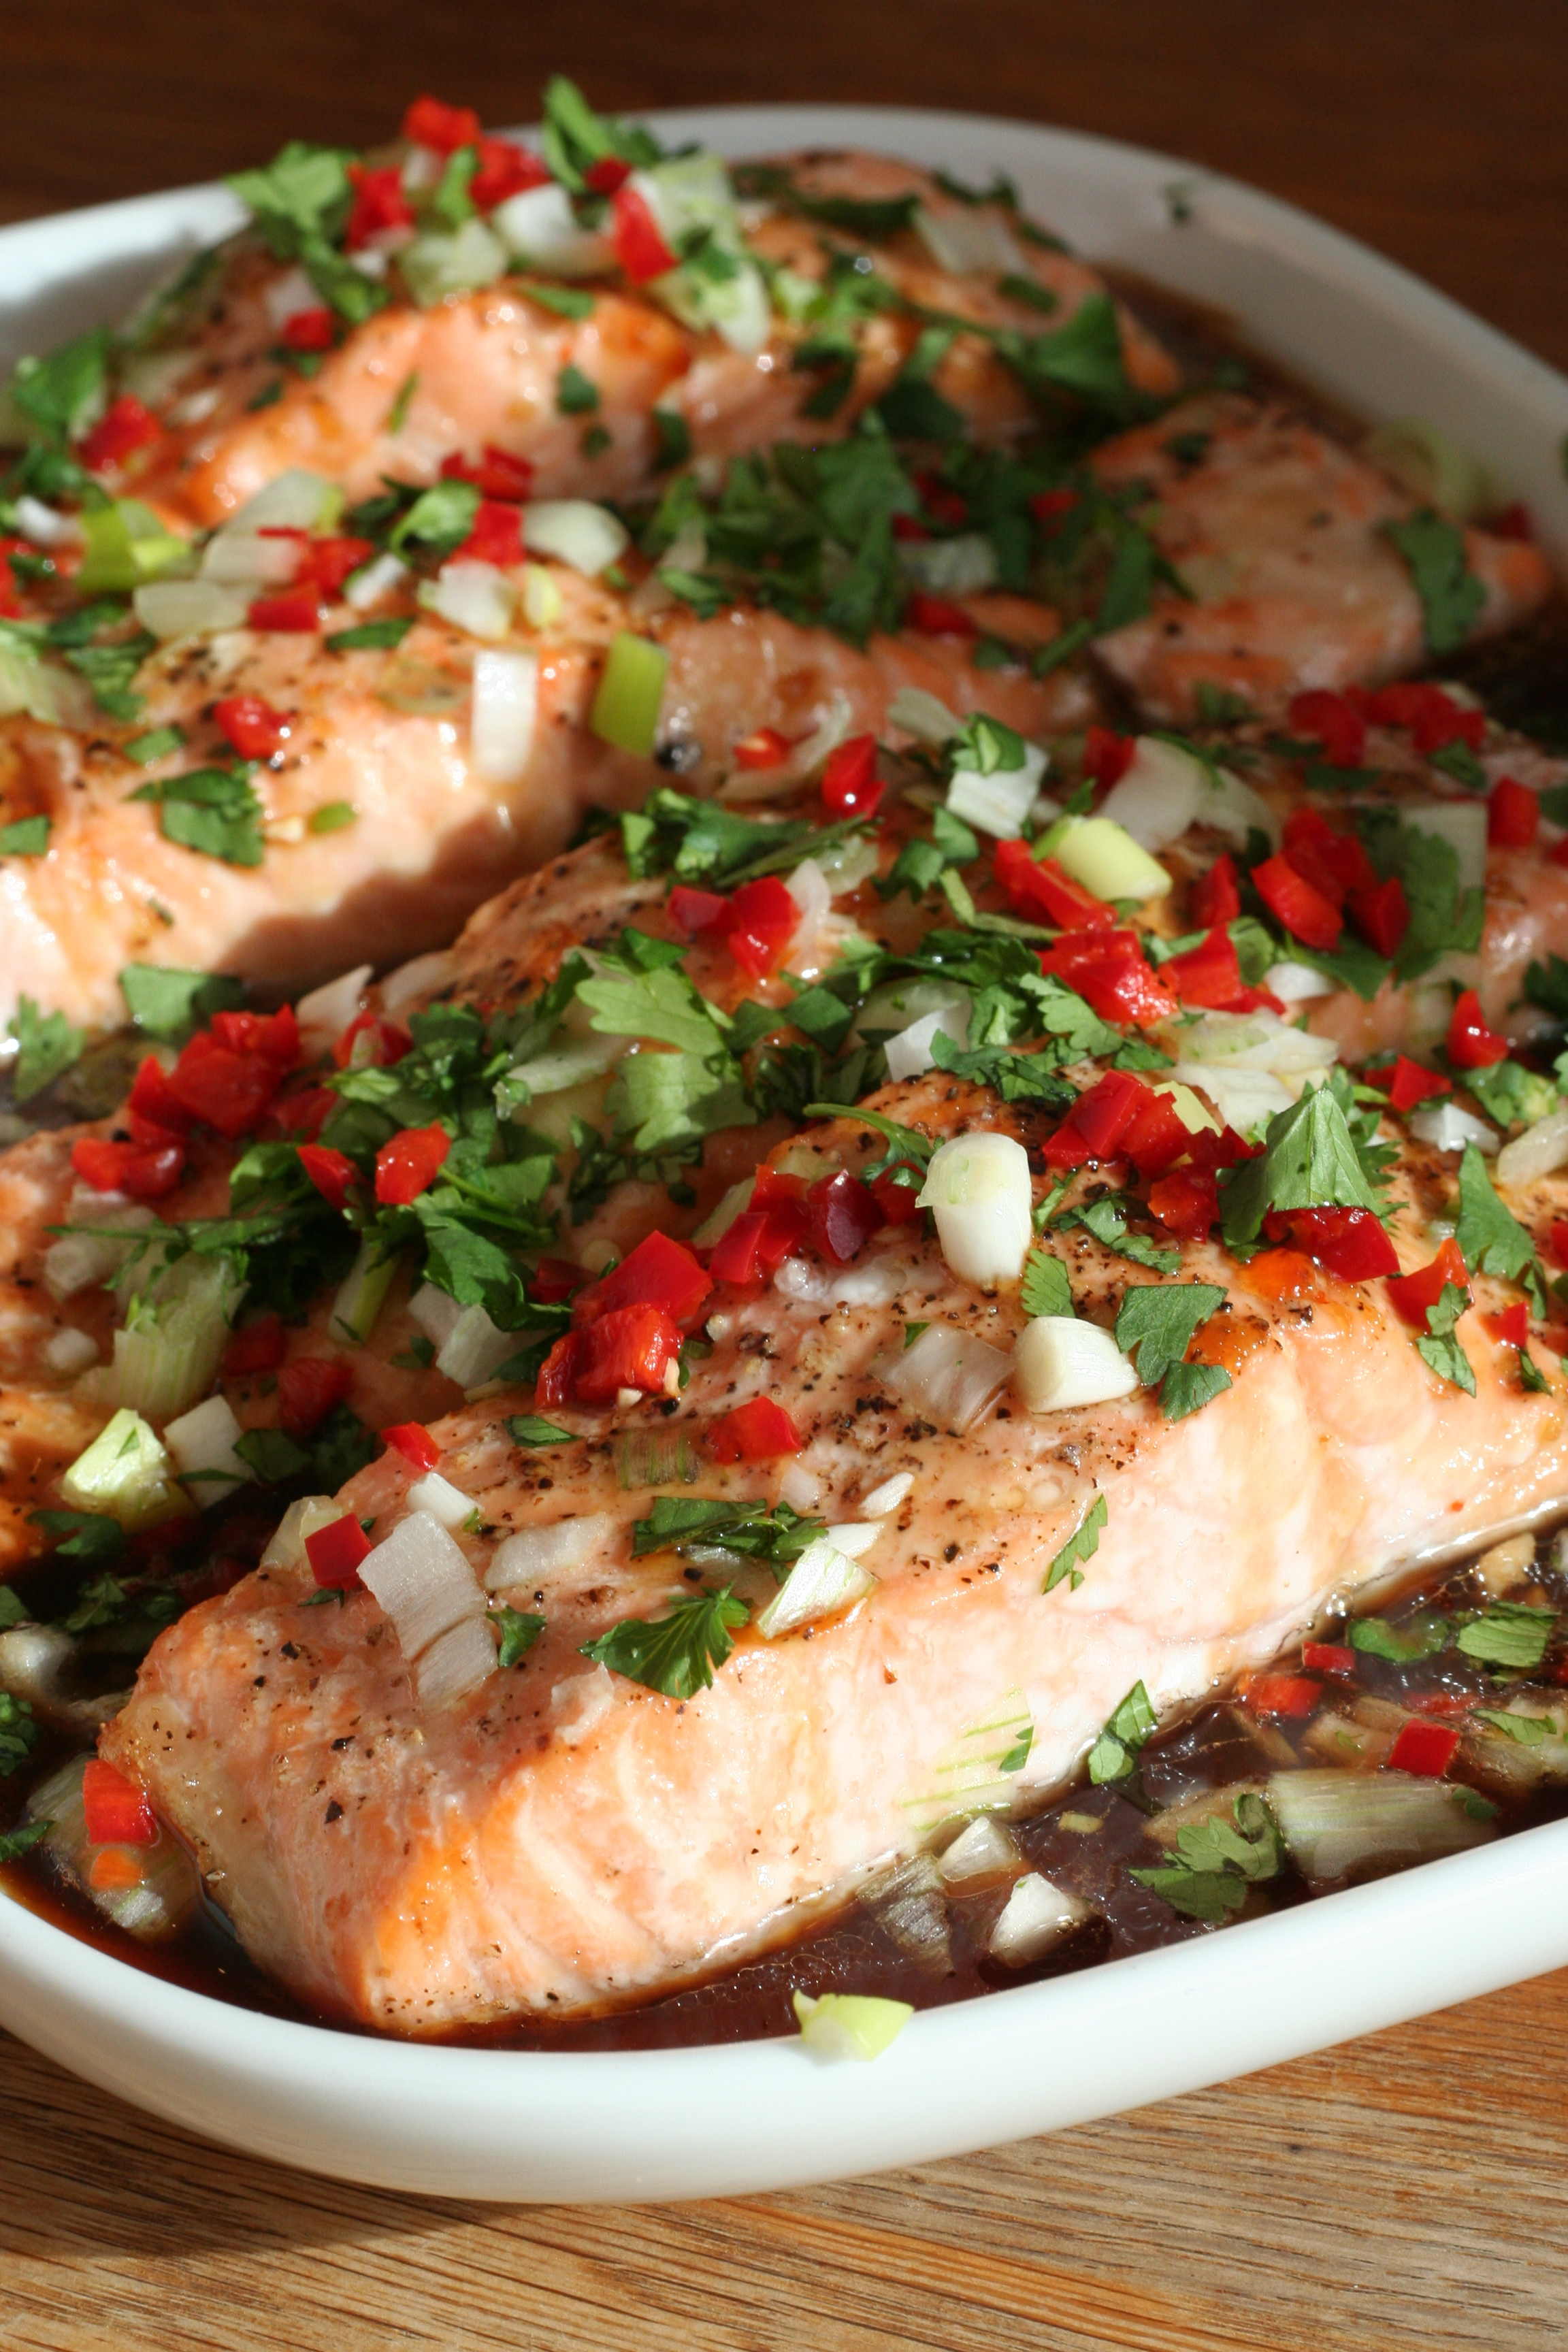 Roasted Salmon with a Cheat's Vietnamese Caramel Sauce